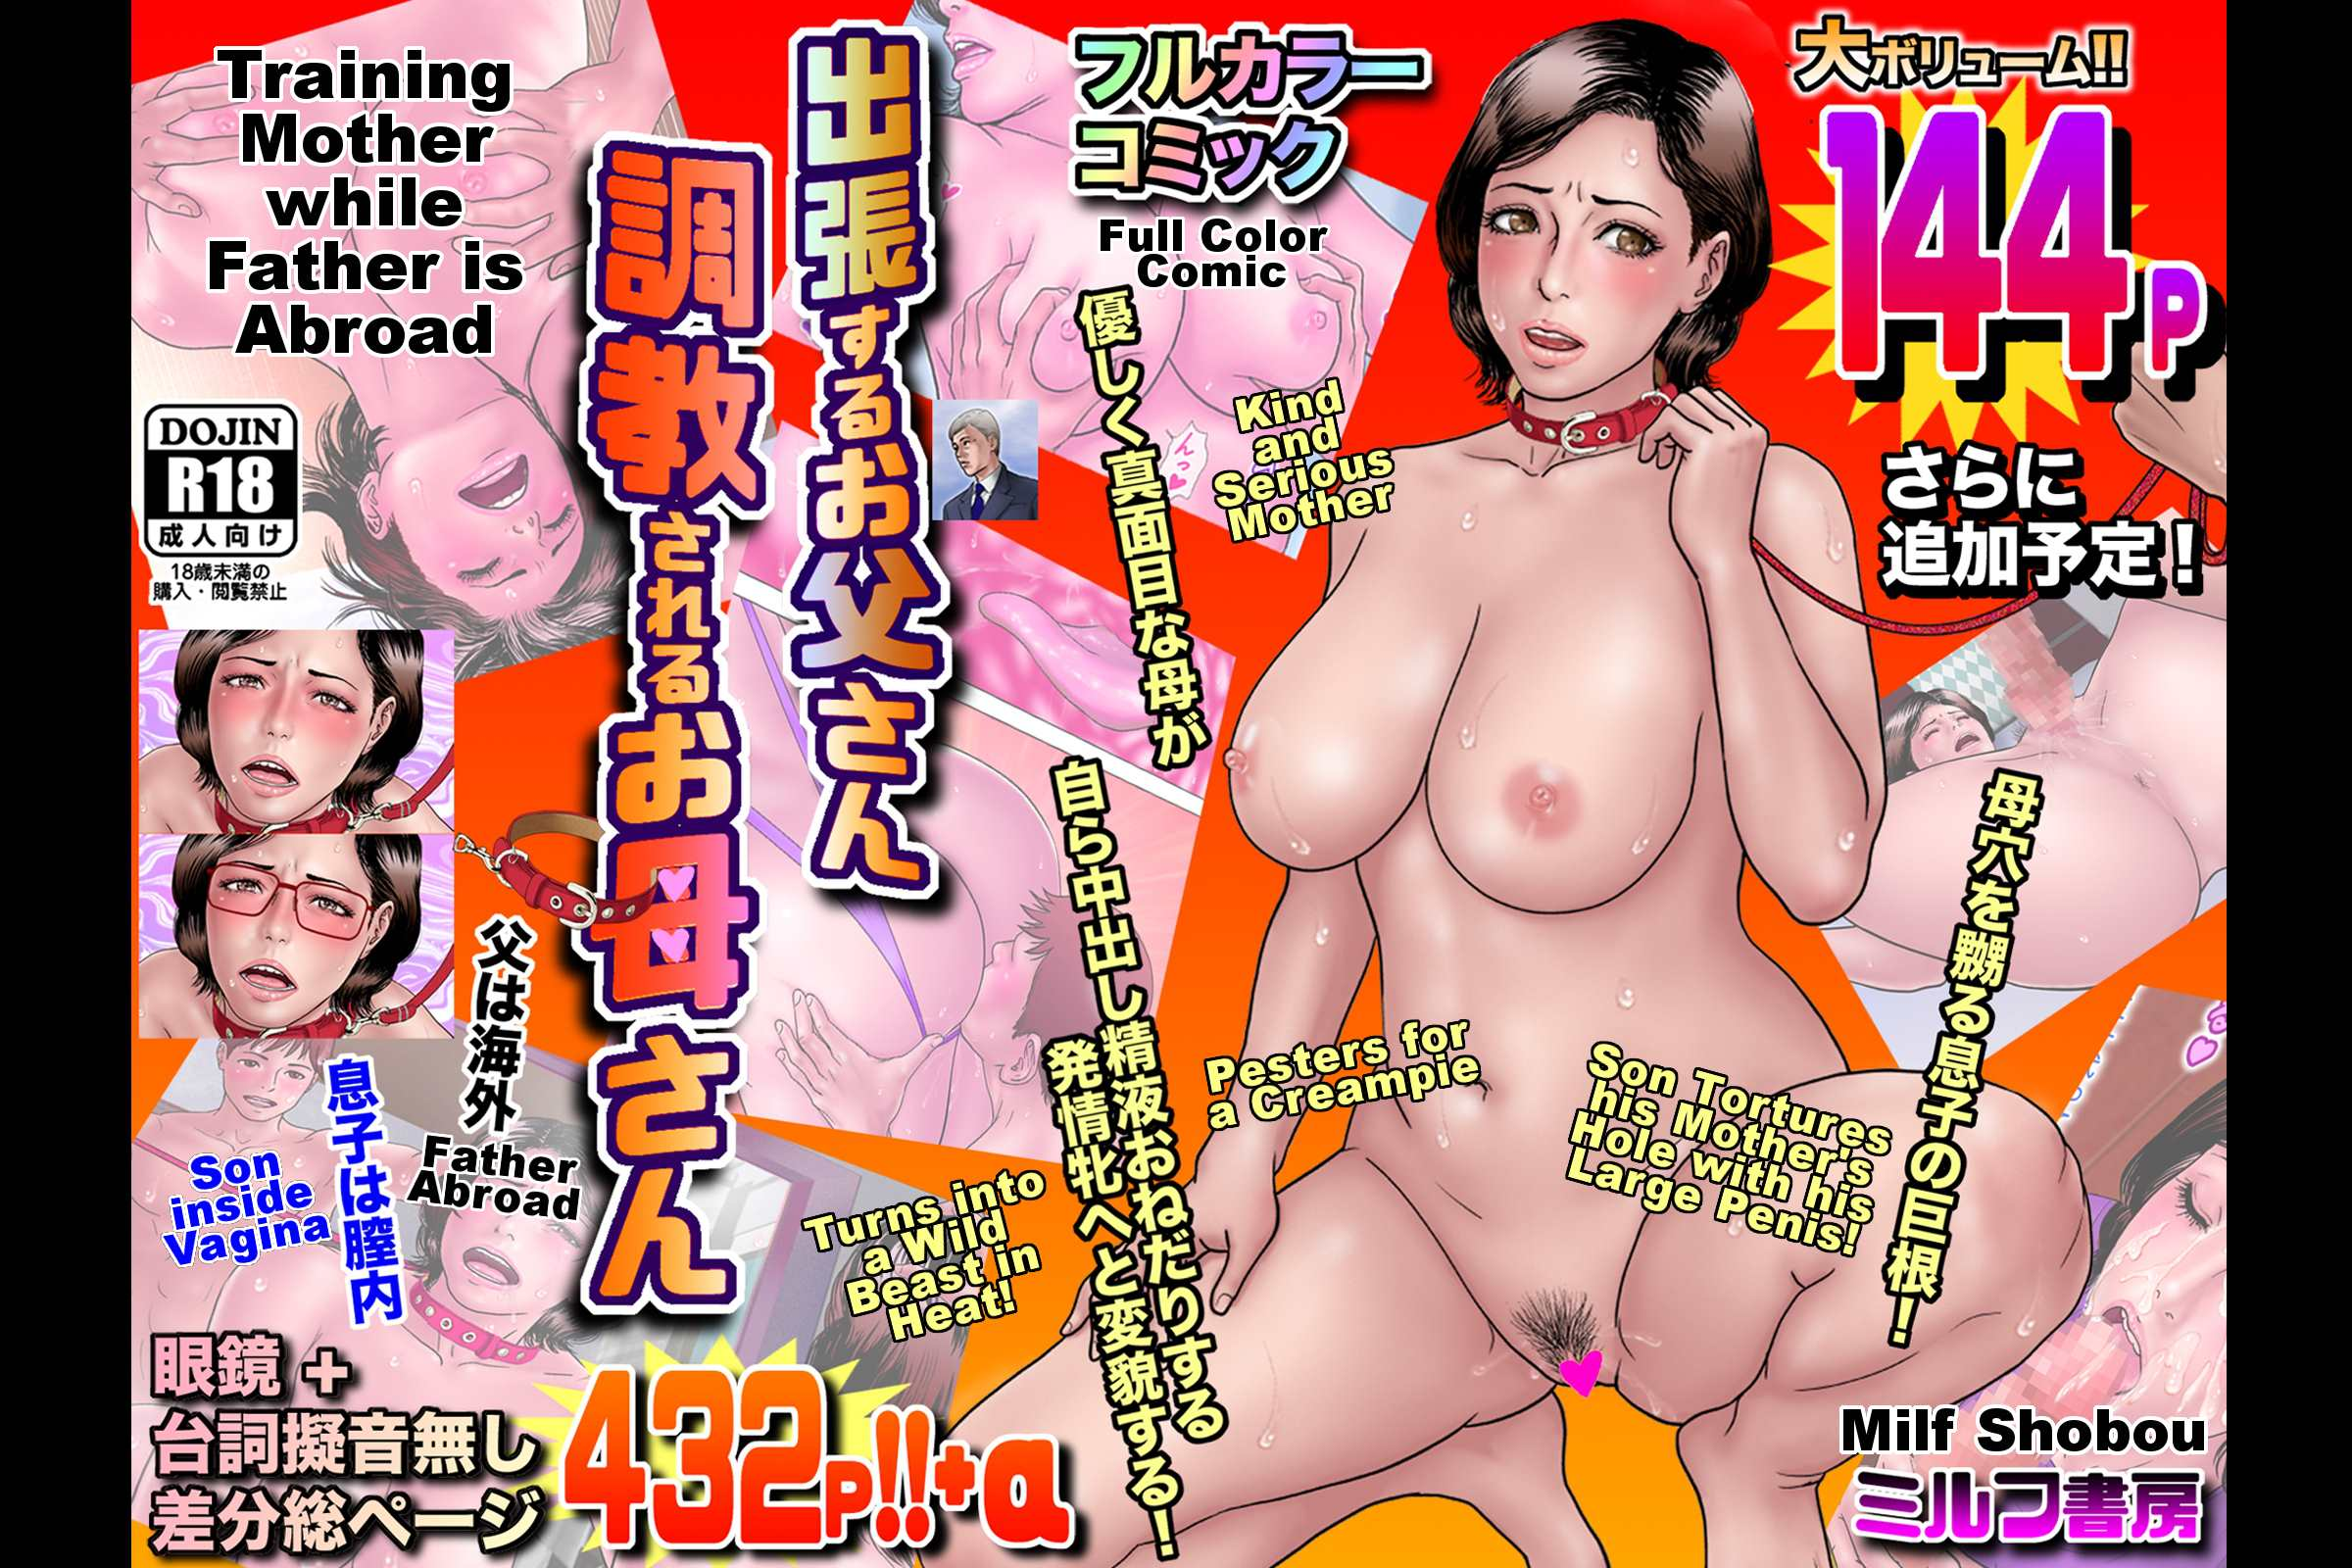 Training Mother while Father is Abroad porn comics 8 muses